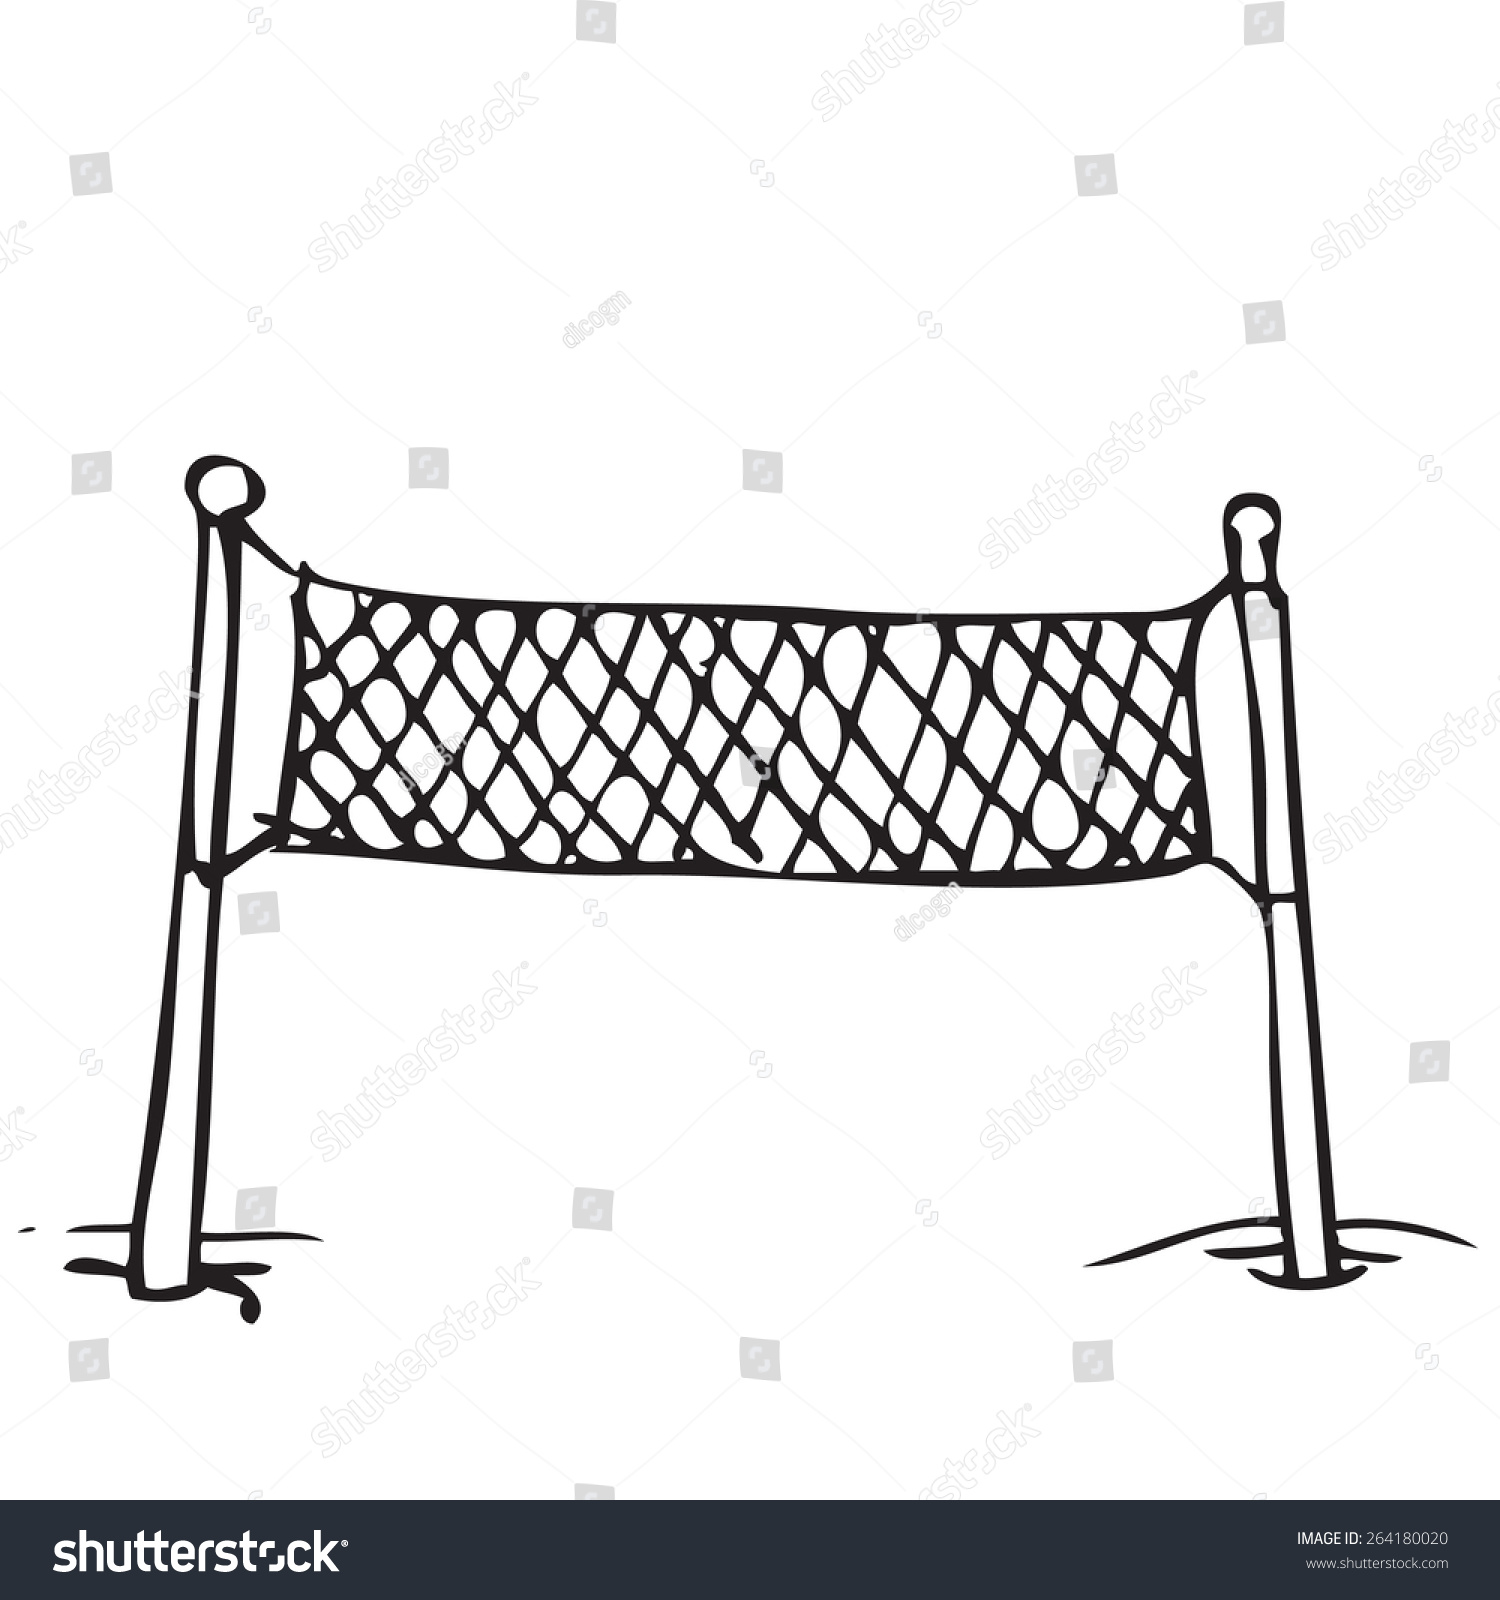 Drawing Lines With Vb Net : Clip art volleyball net poles cliparts